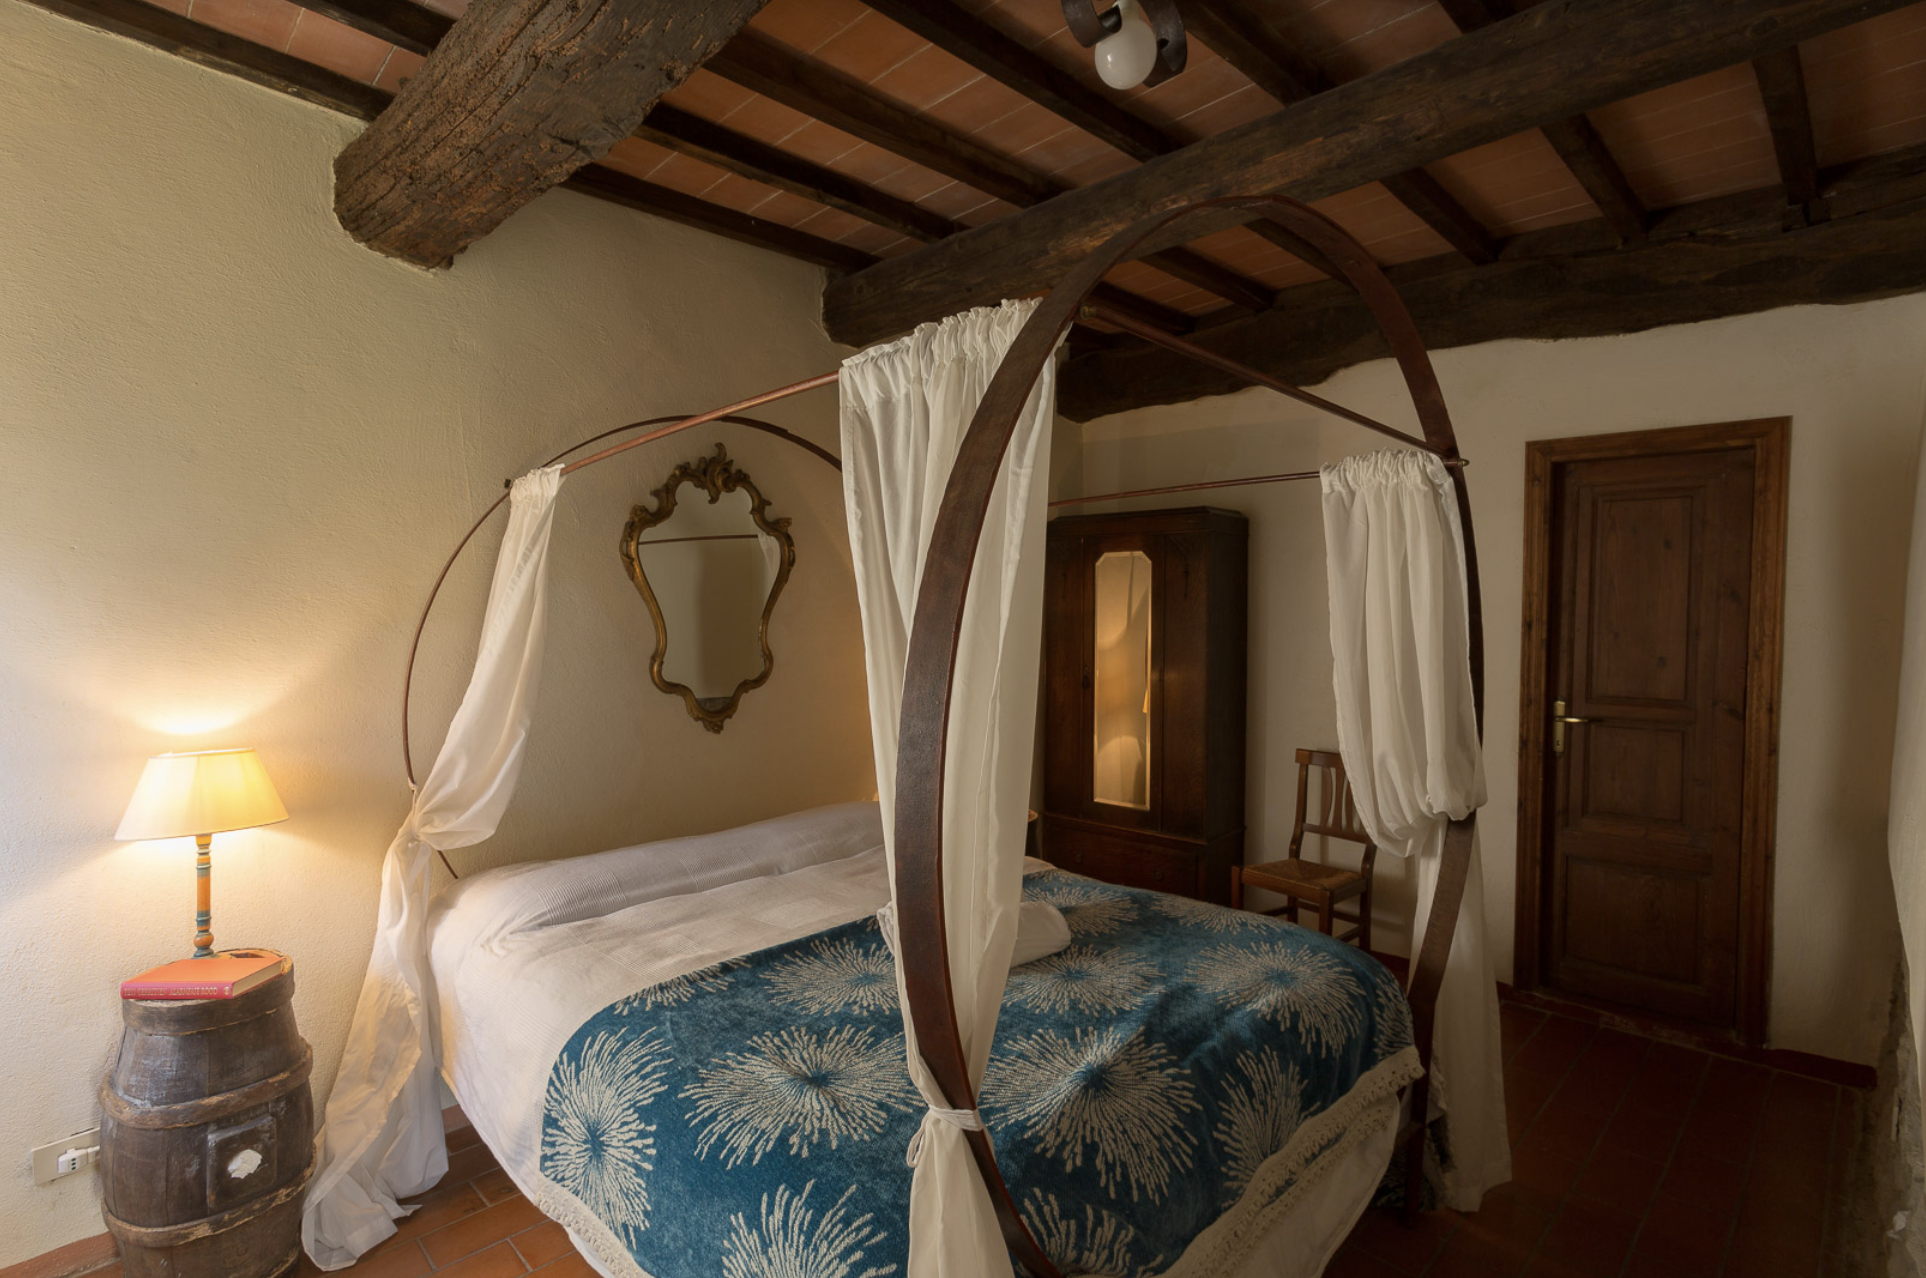 Borghetto 6 (1 bedroom apartment on the ground floor sleeps up to 2 guests)